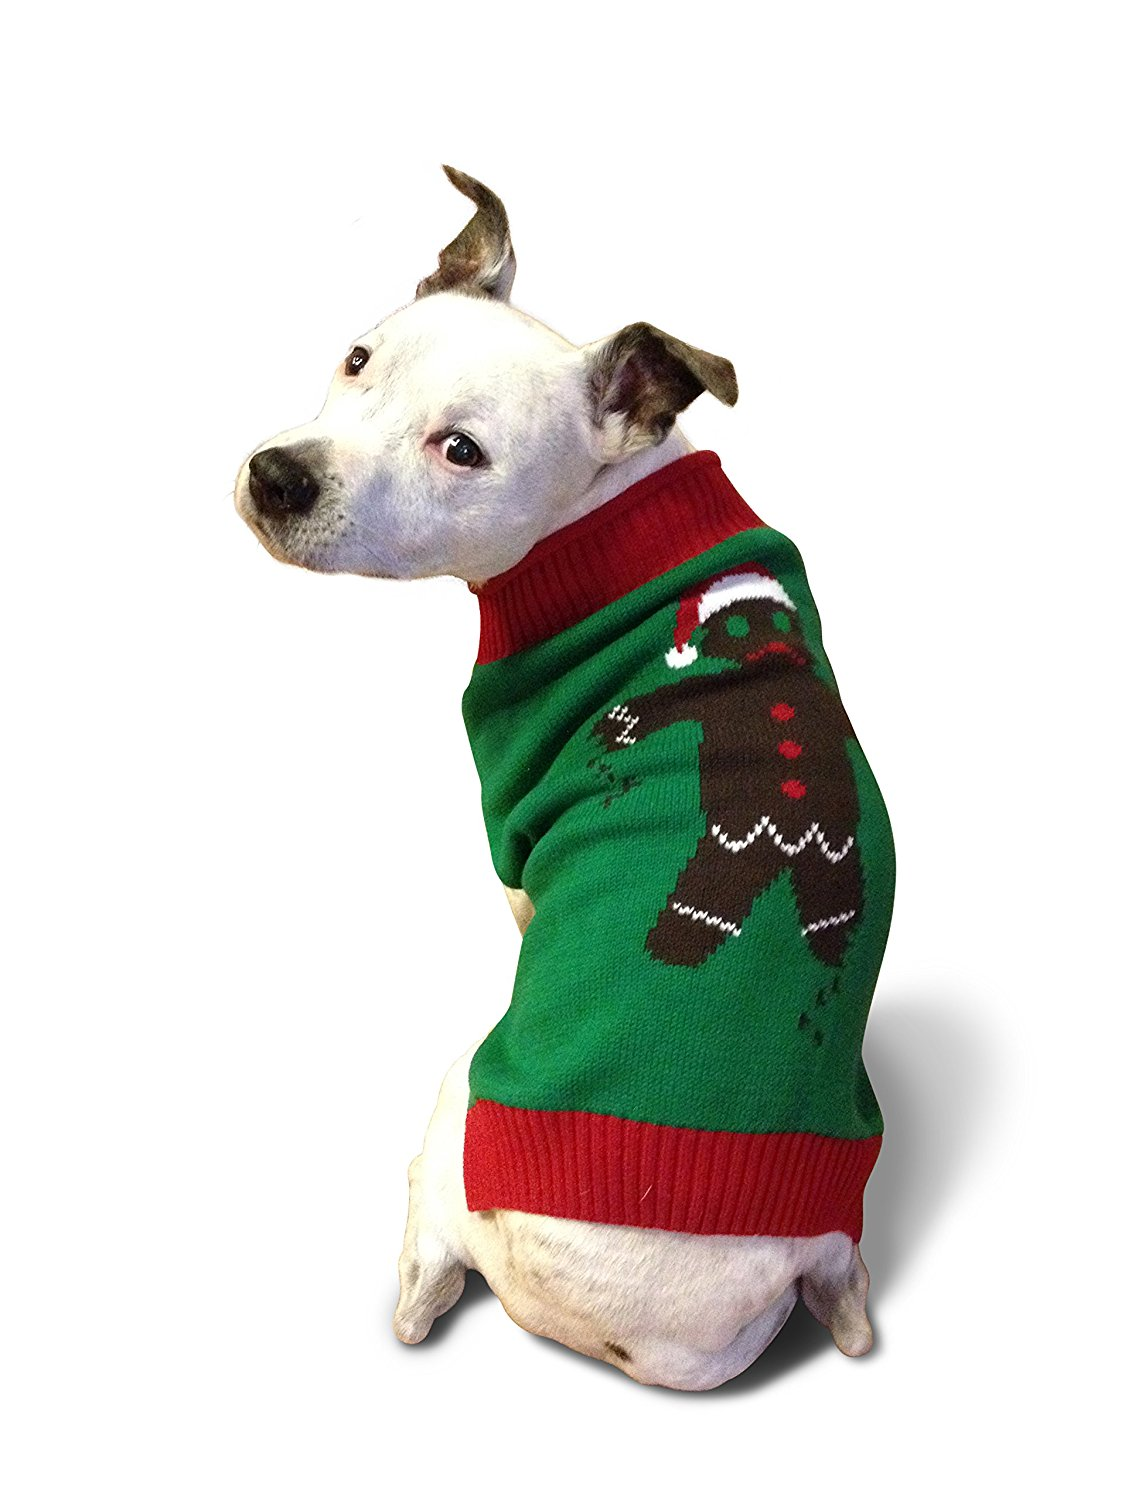 Gingerbread man Ugly Christmas Sweater for Dogs